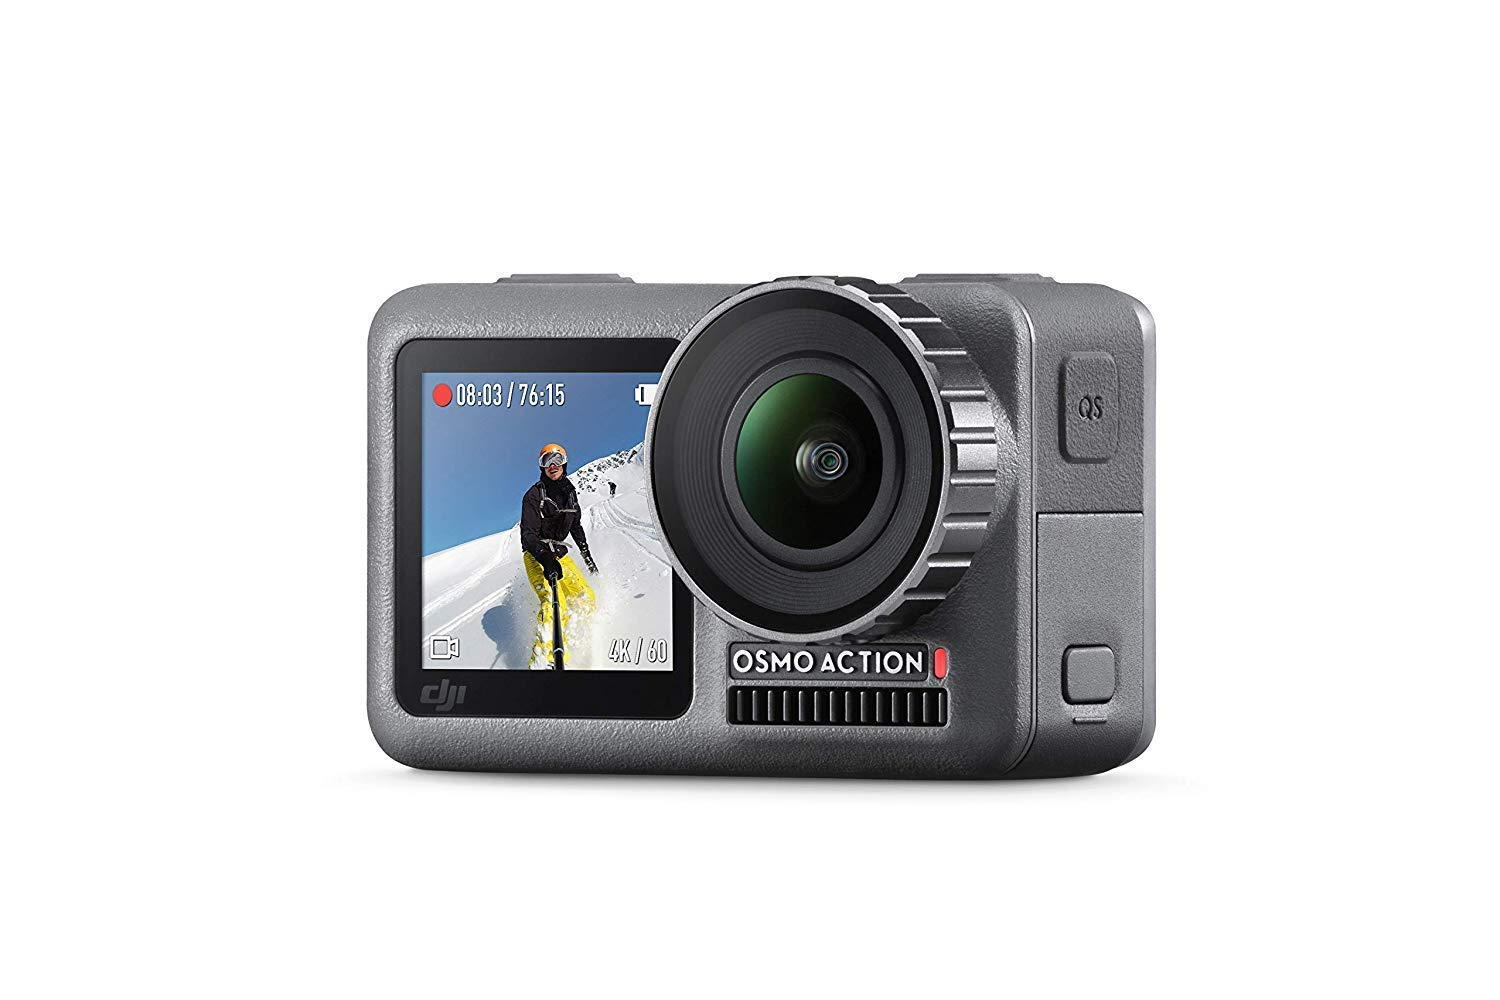 DJI OSMO Action Cam Digital Camera with 2 Displays 36FT/11M Waterproof 4K HDR-Video 12MP 145° Angle Black by DJI